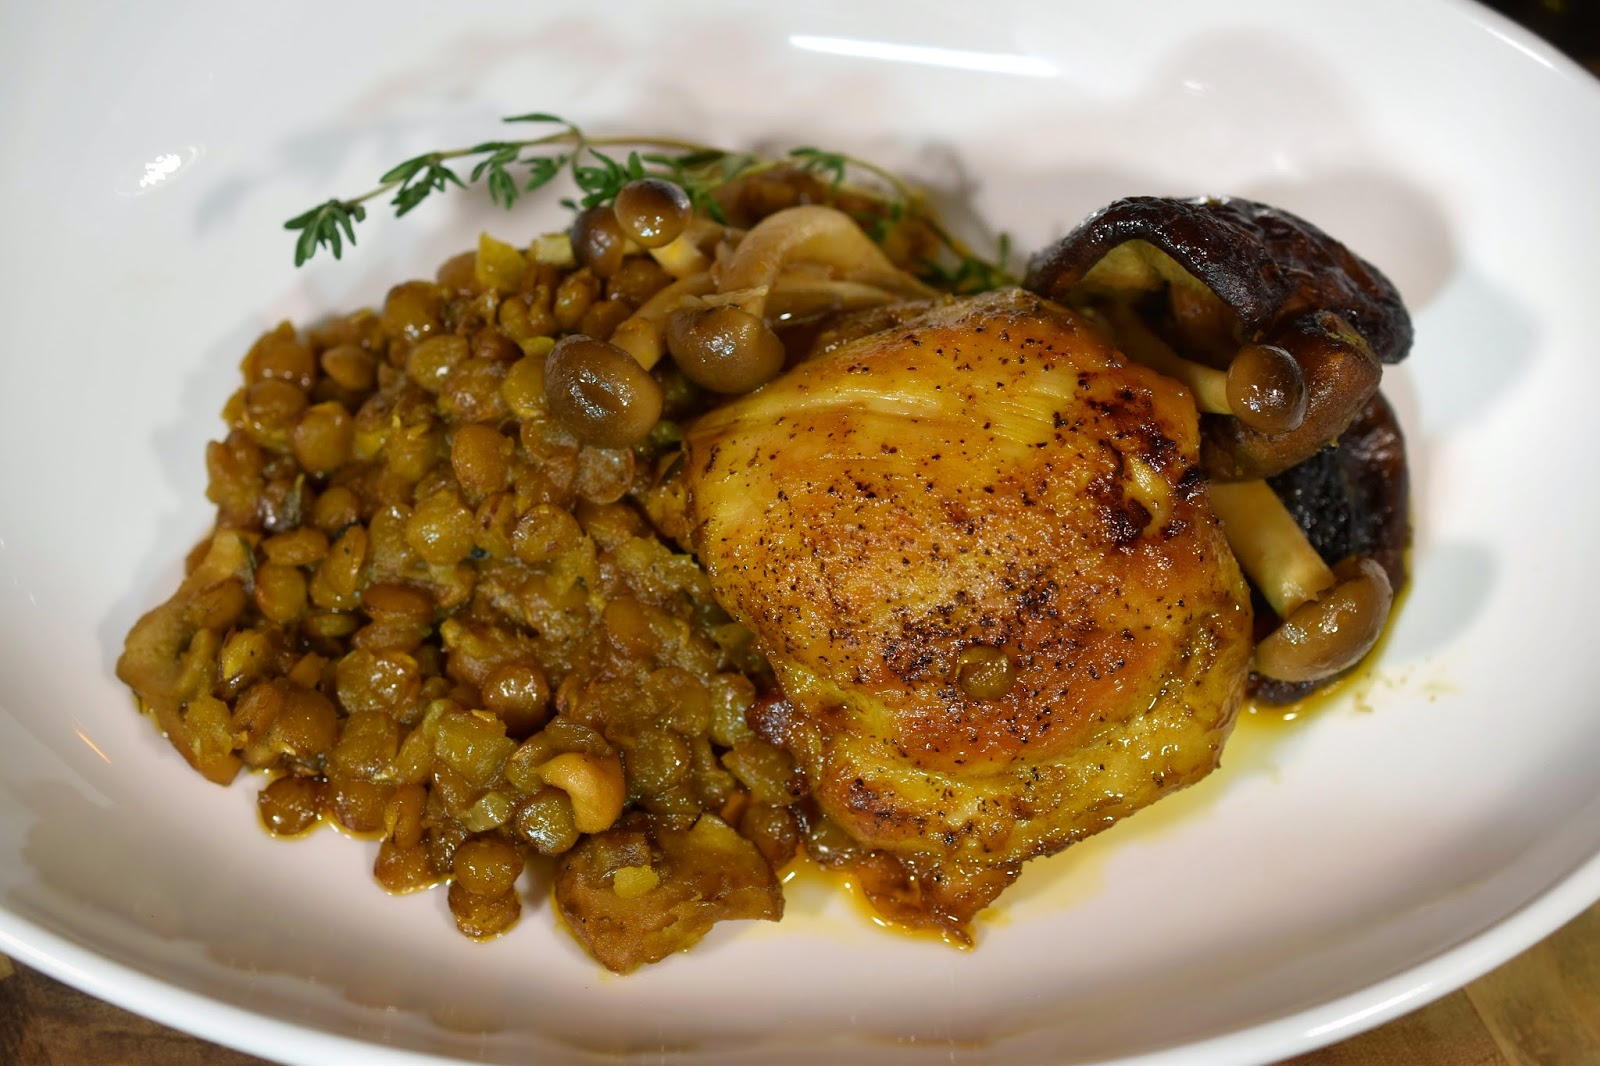 Chicken and Lentils with Mushroom Escabeche